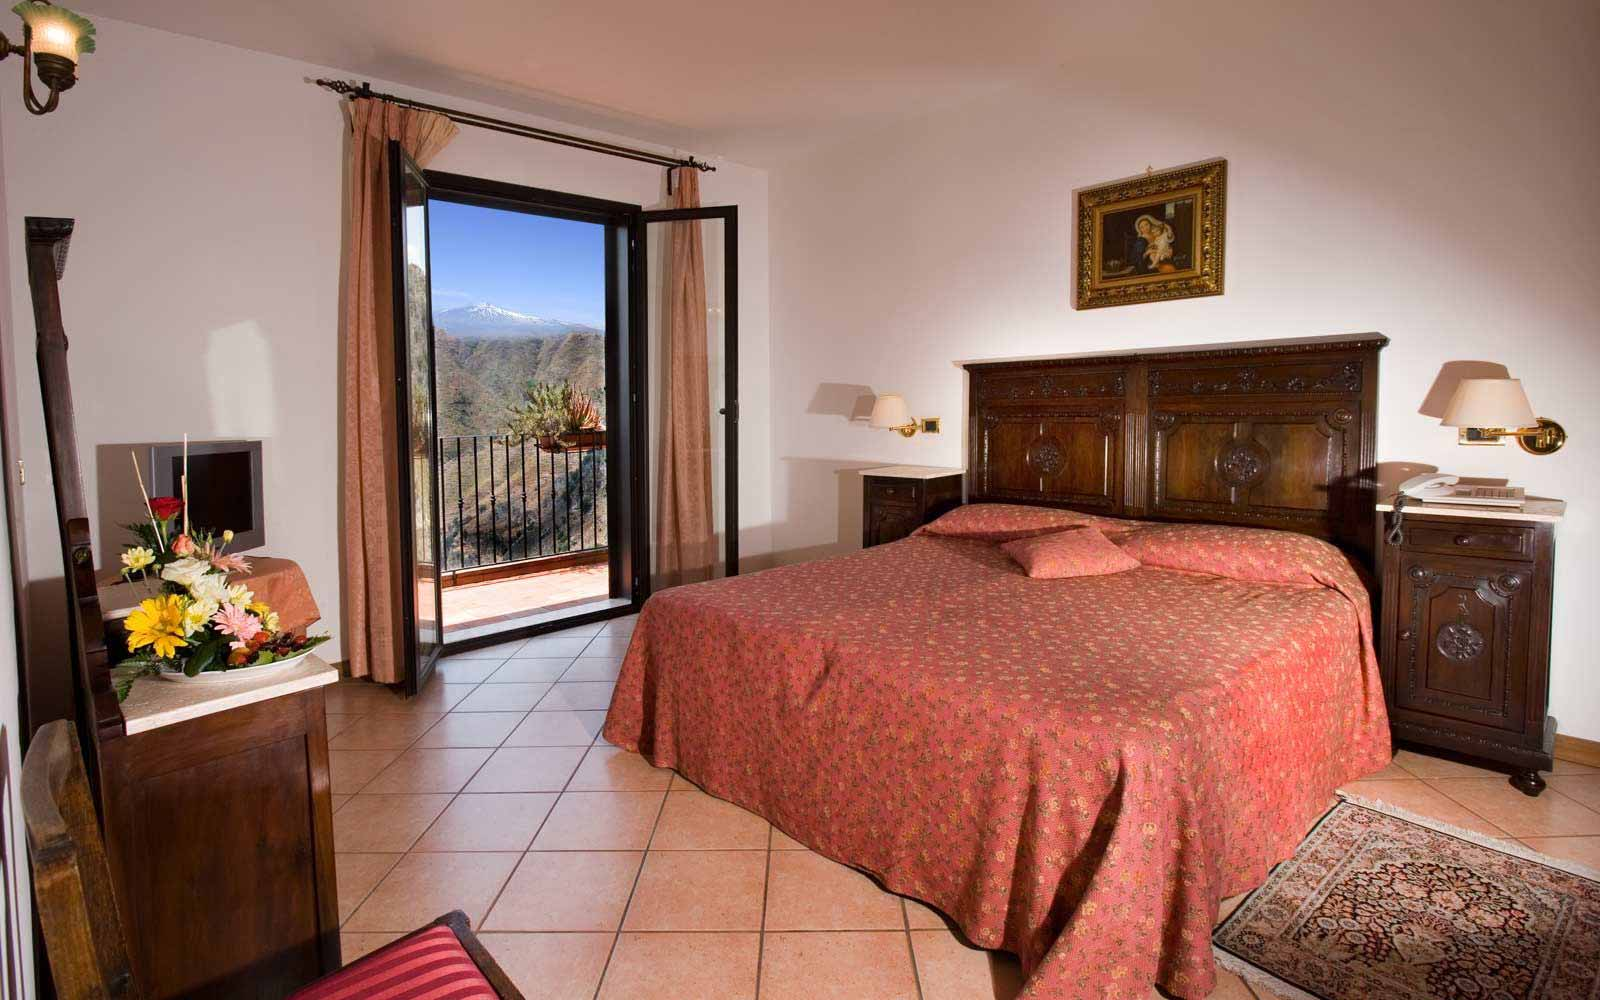 Superior room with Etna view at Villa Sonia